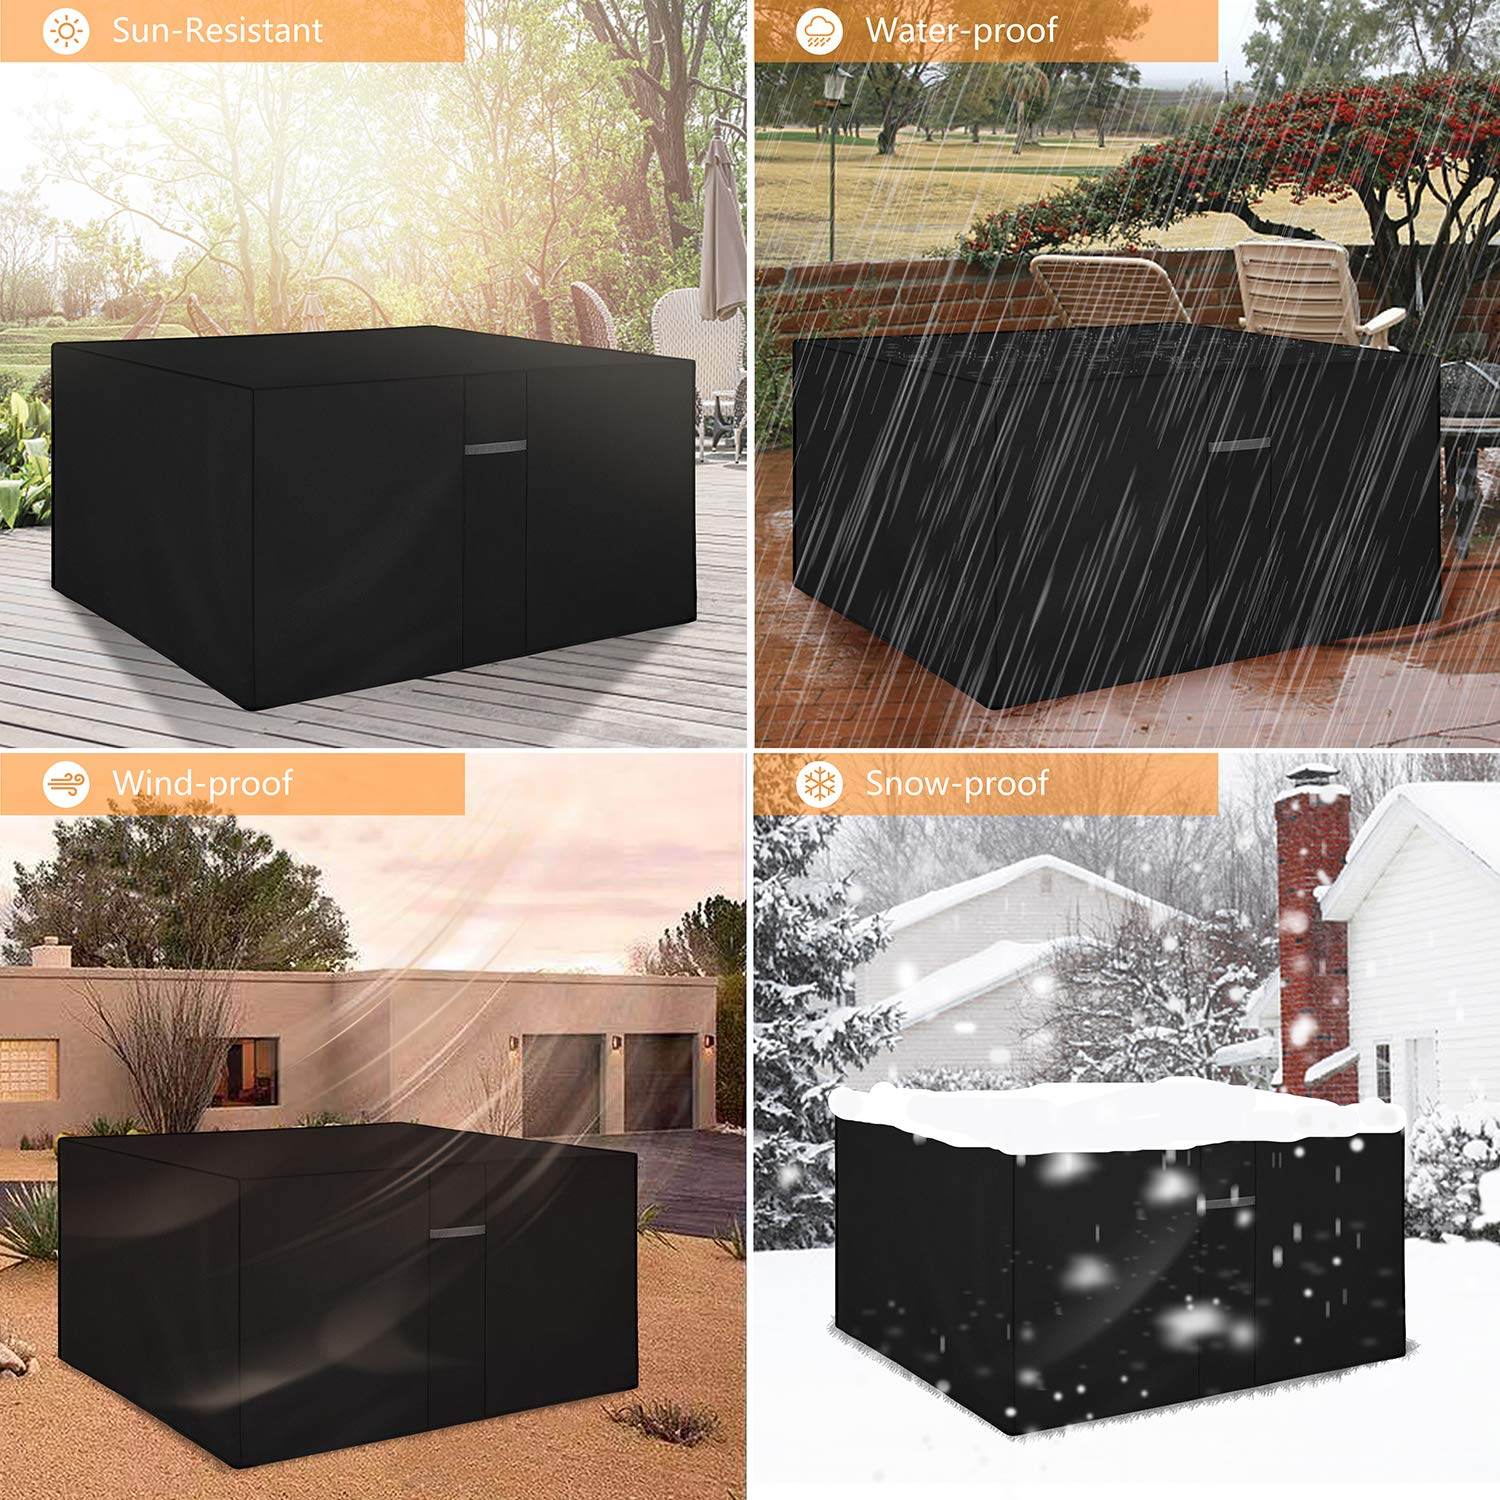 Dokon Cube Garden Furniture Cover with Air Vent, Waterproof, Windproof, Anti-UV, Heavy Duty Rip Proof 600D Oxford Fabric Patio Rattan Cube Set Cover (125 x 125 x 74cm) - Black